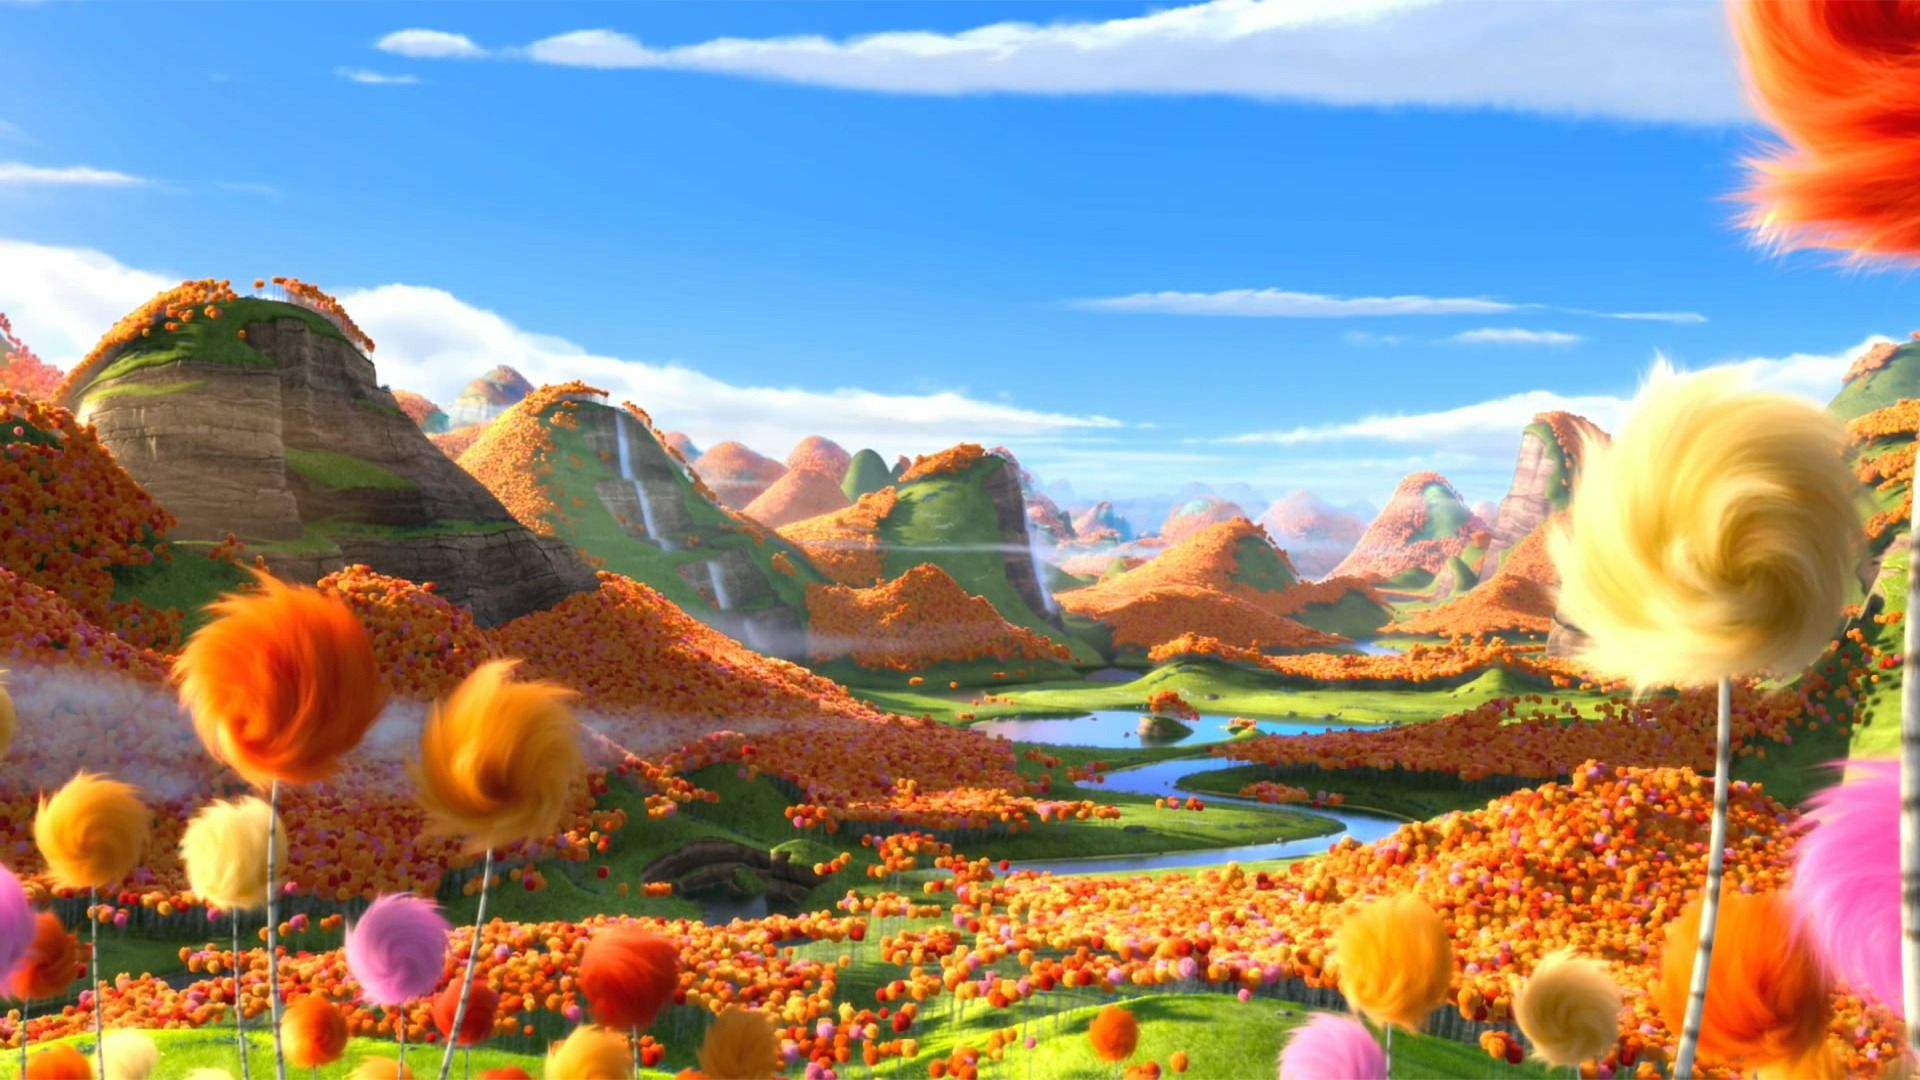 The Lorax Image Hd Paysage Dr Seuss